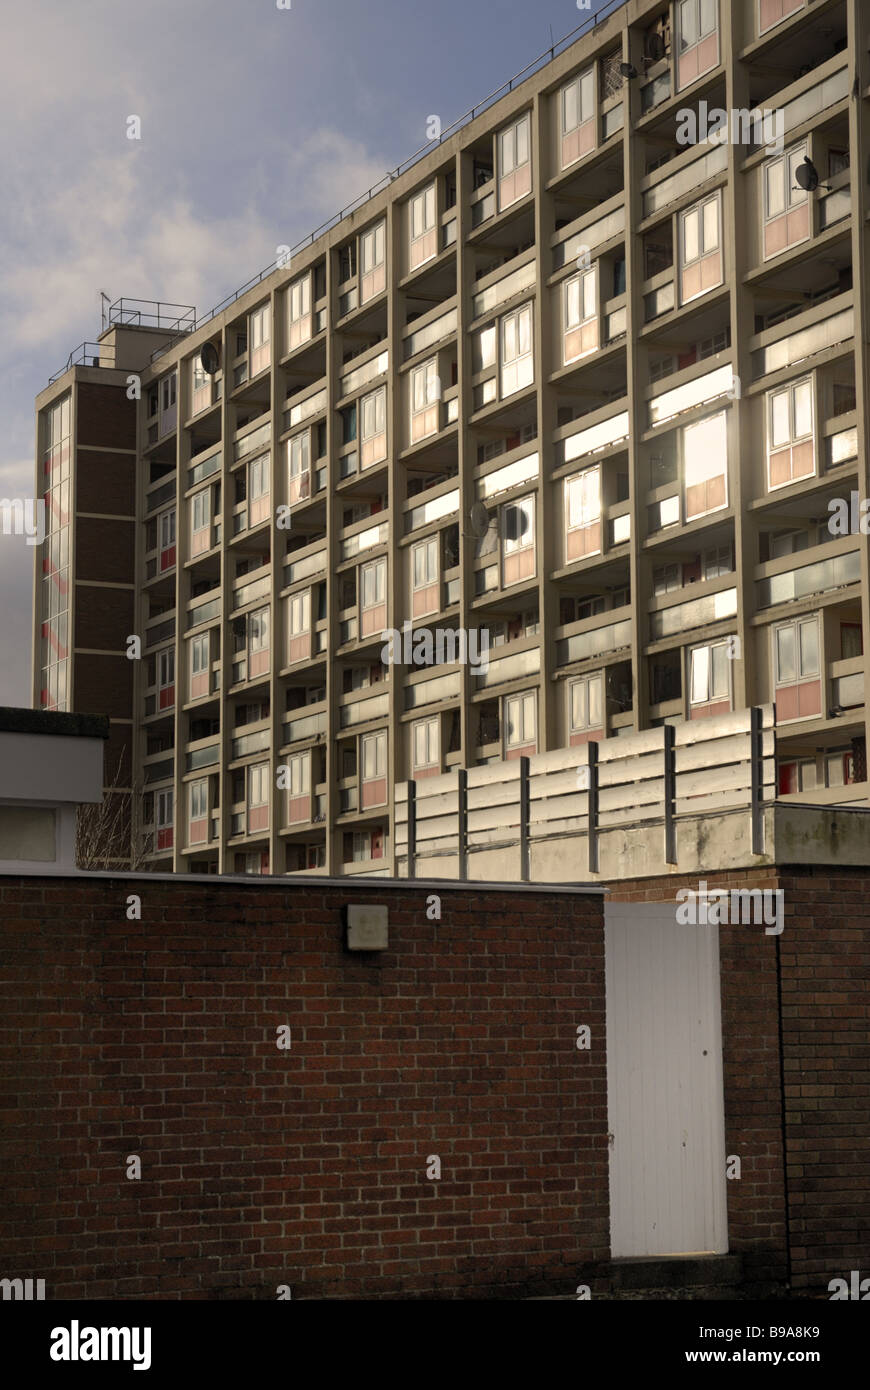 A 1960`s block of flats with light reflecting off windows and a wall and gate in the foreground - Stock Image